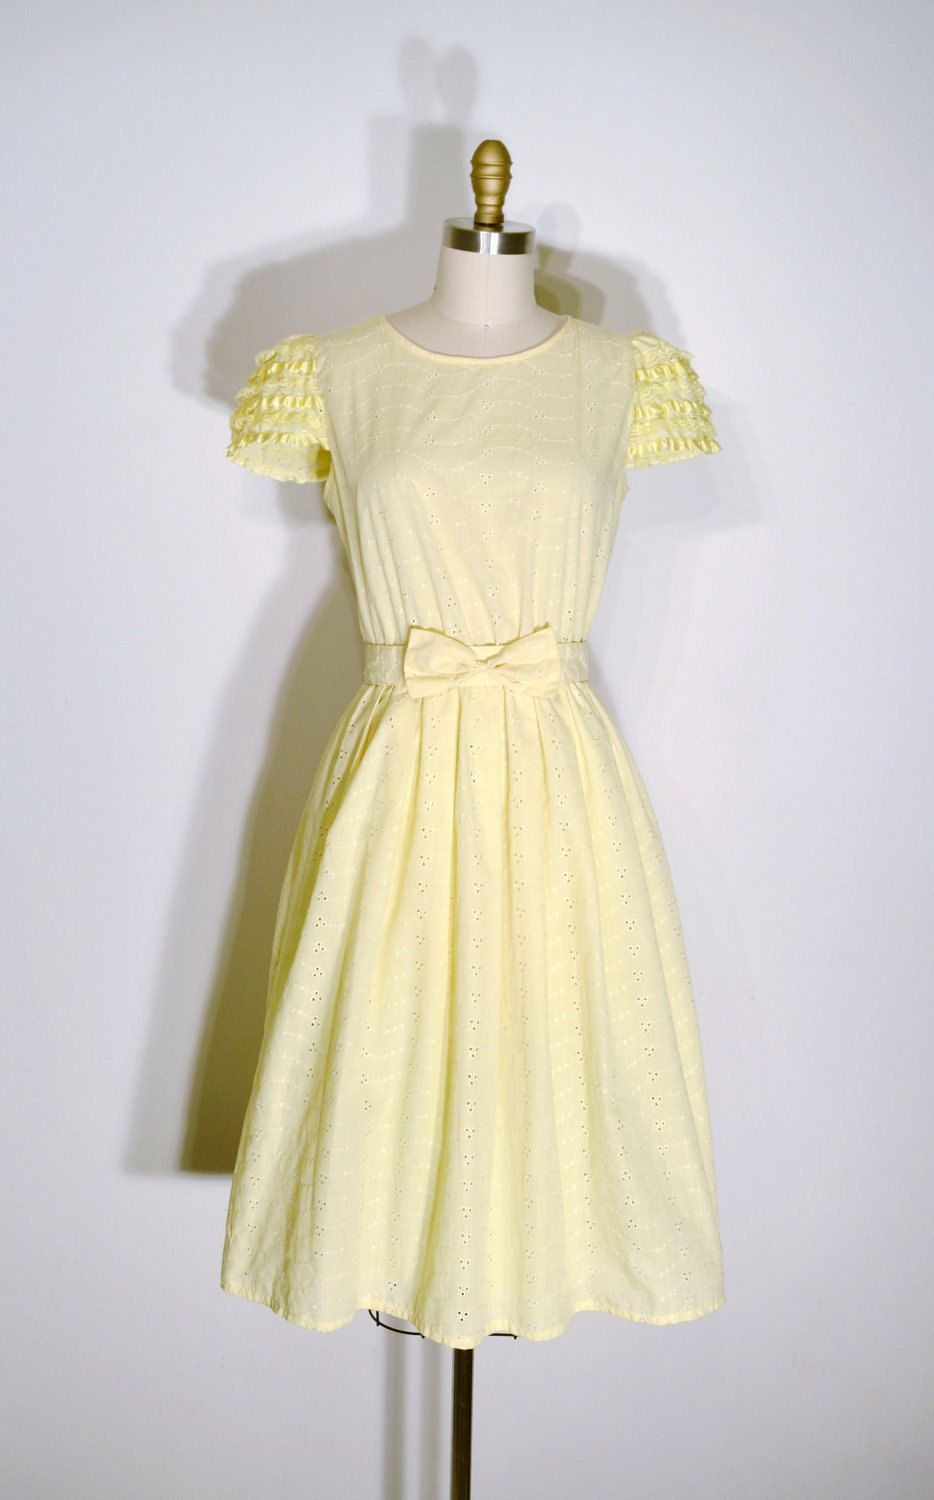 1e69917f4f6 Vintage 1960s Dress - 60s Party Dress - Yellow Lace Floral Eyelet ...